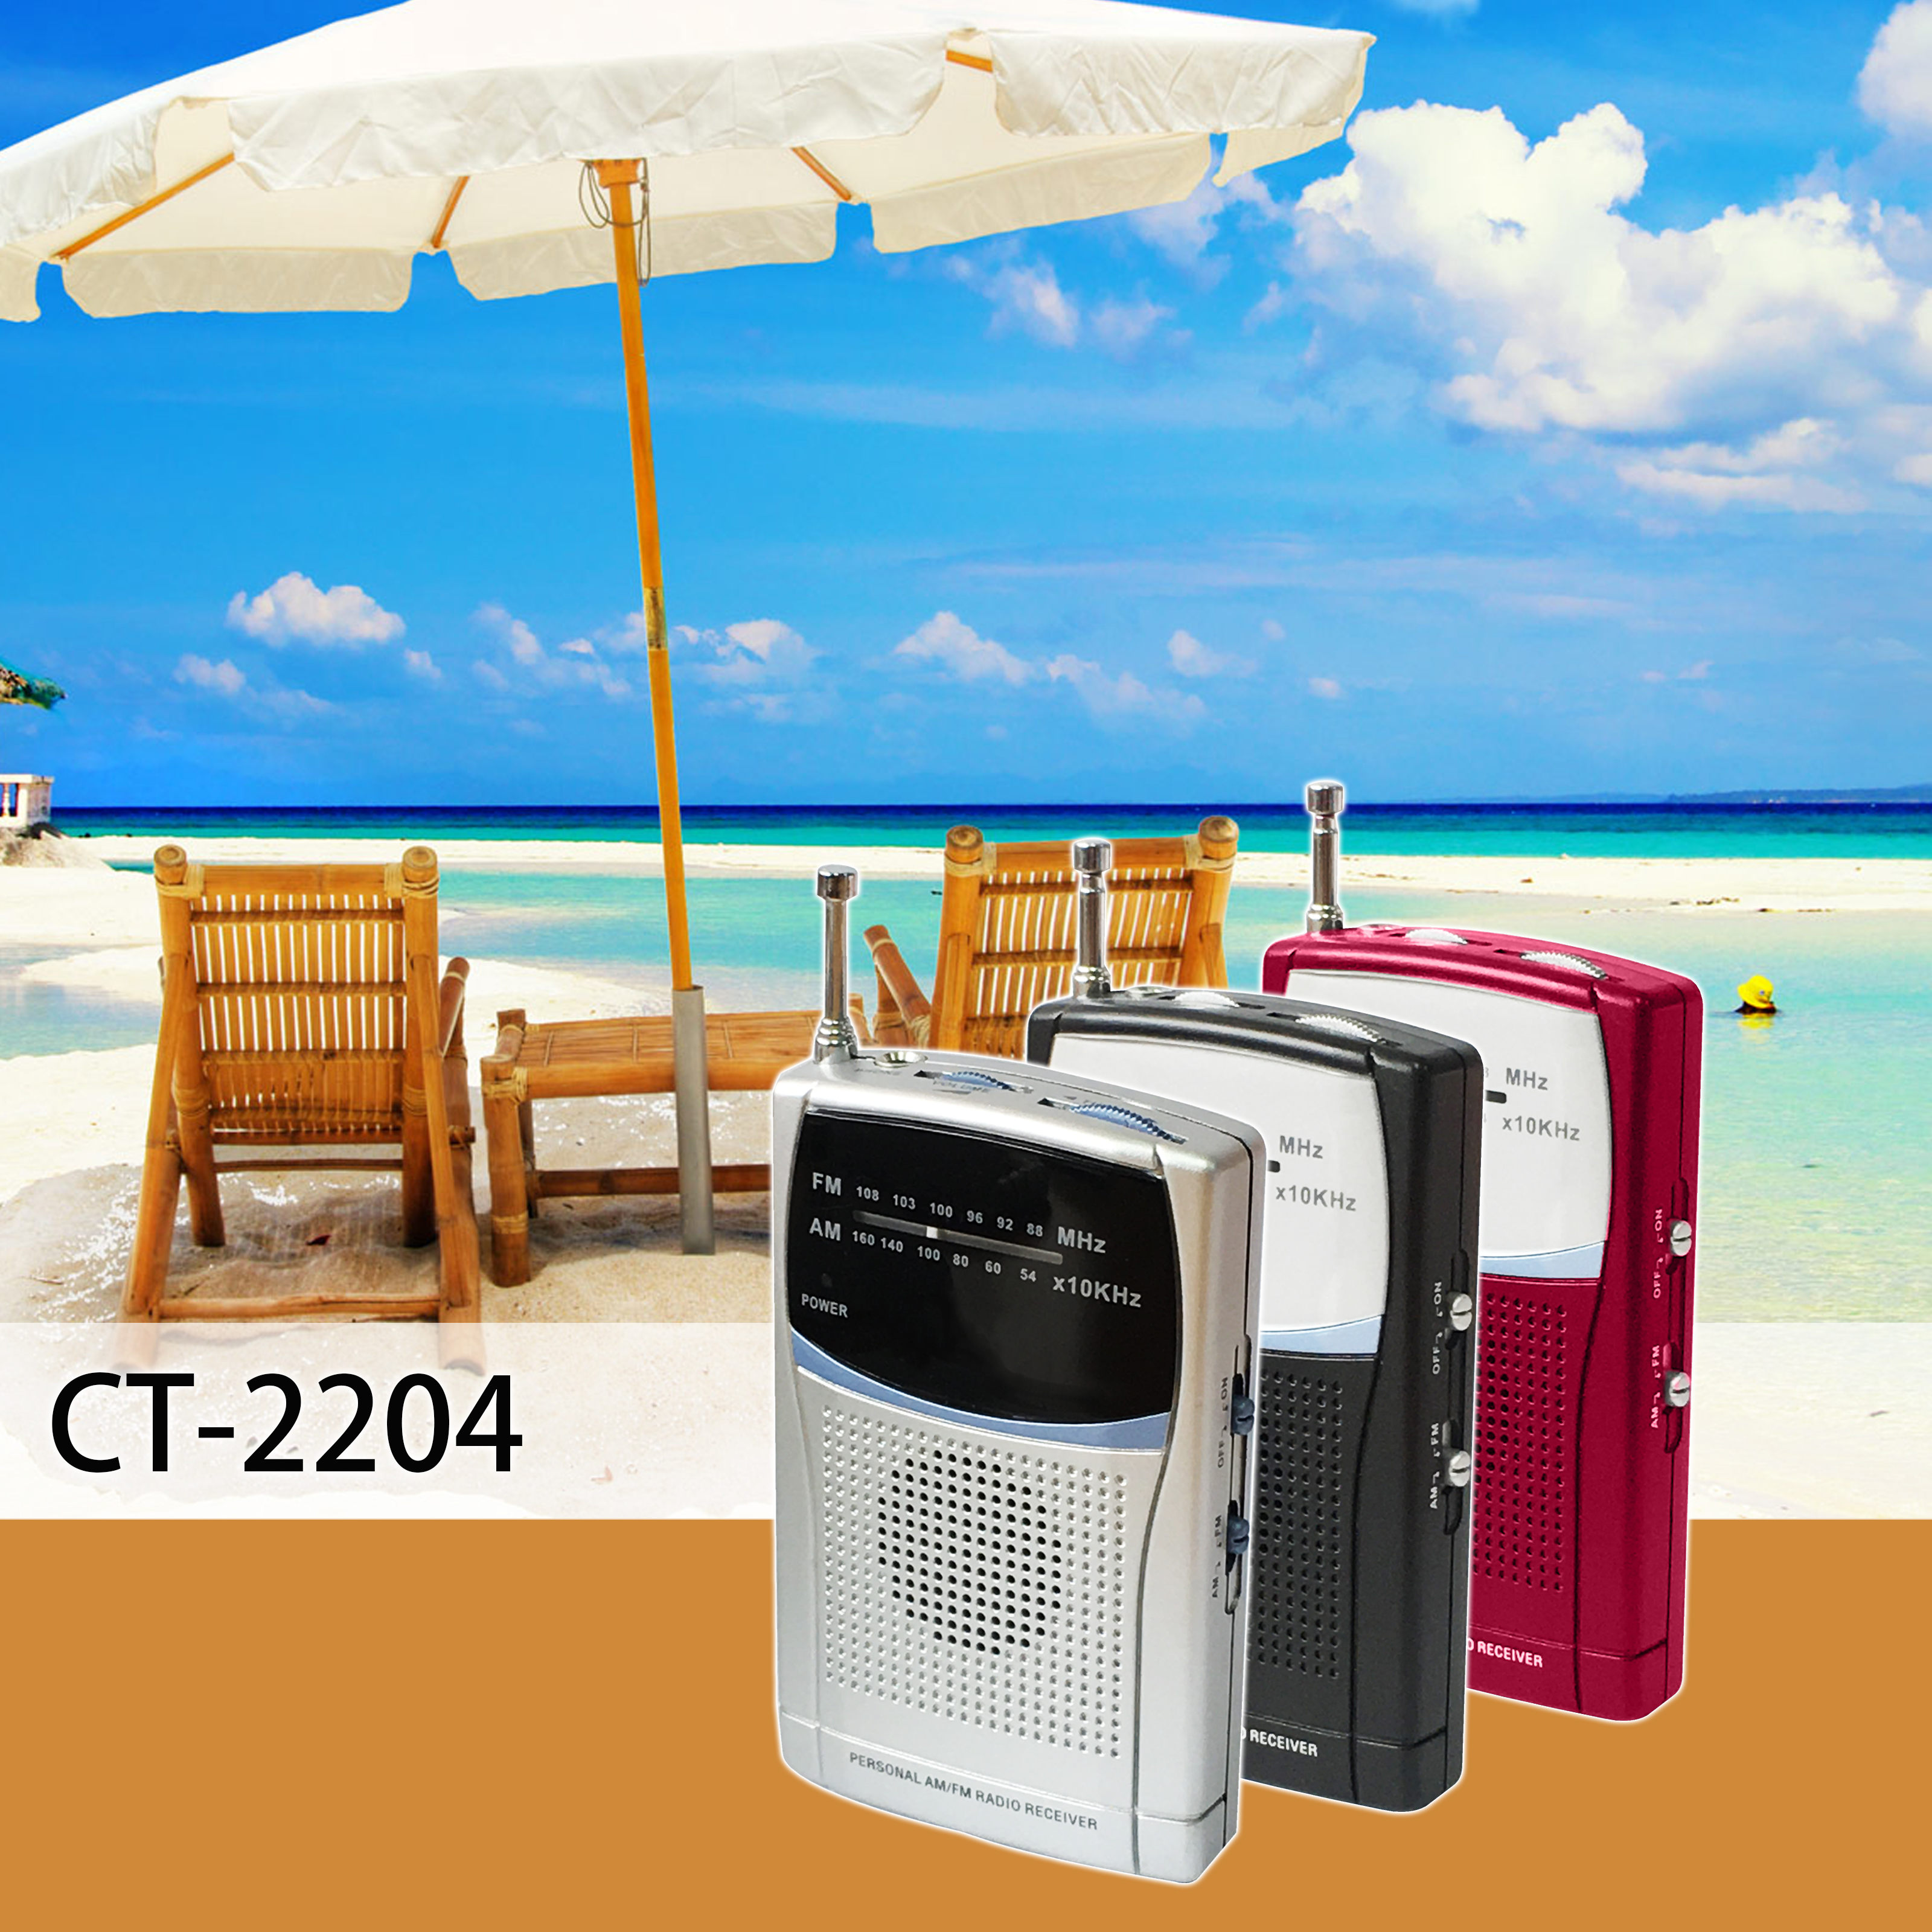 CT-2204 beach side.jpg